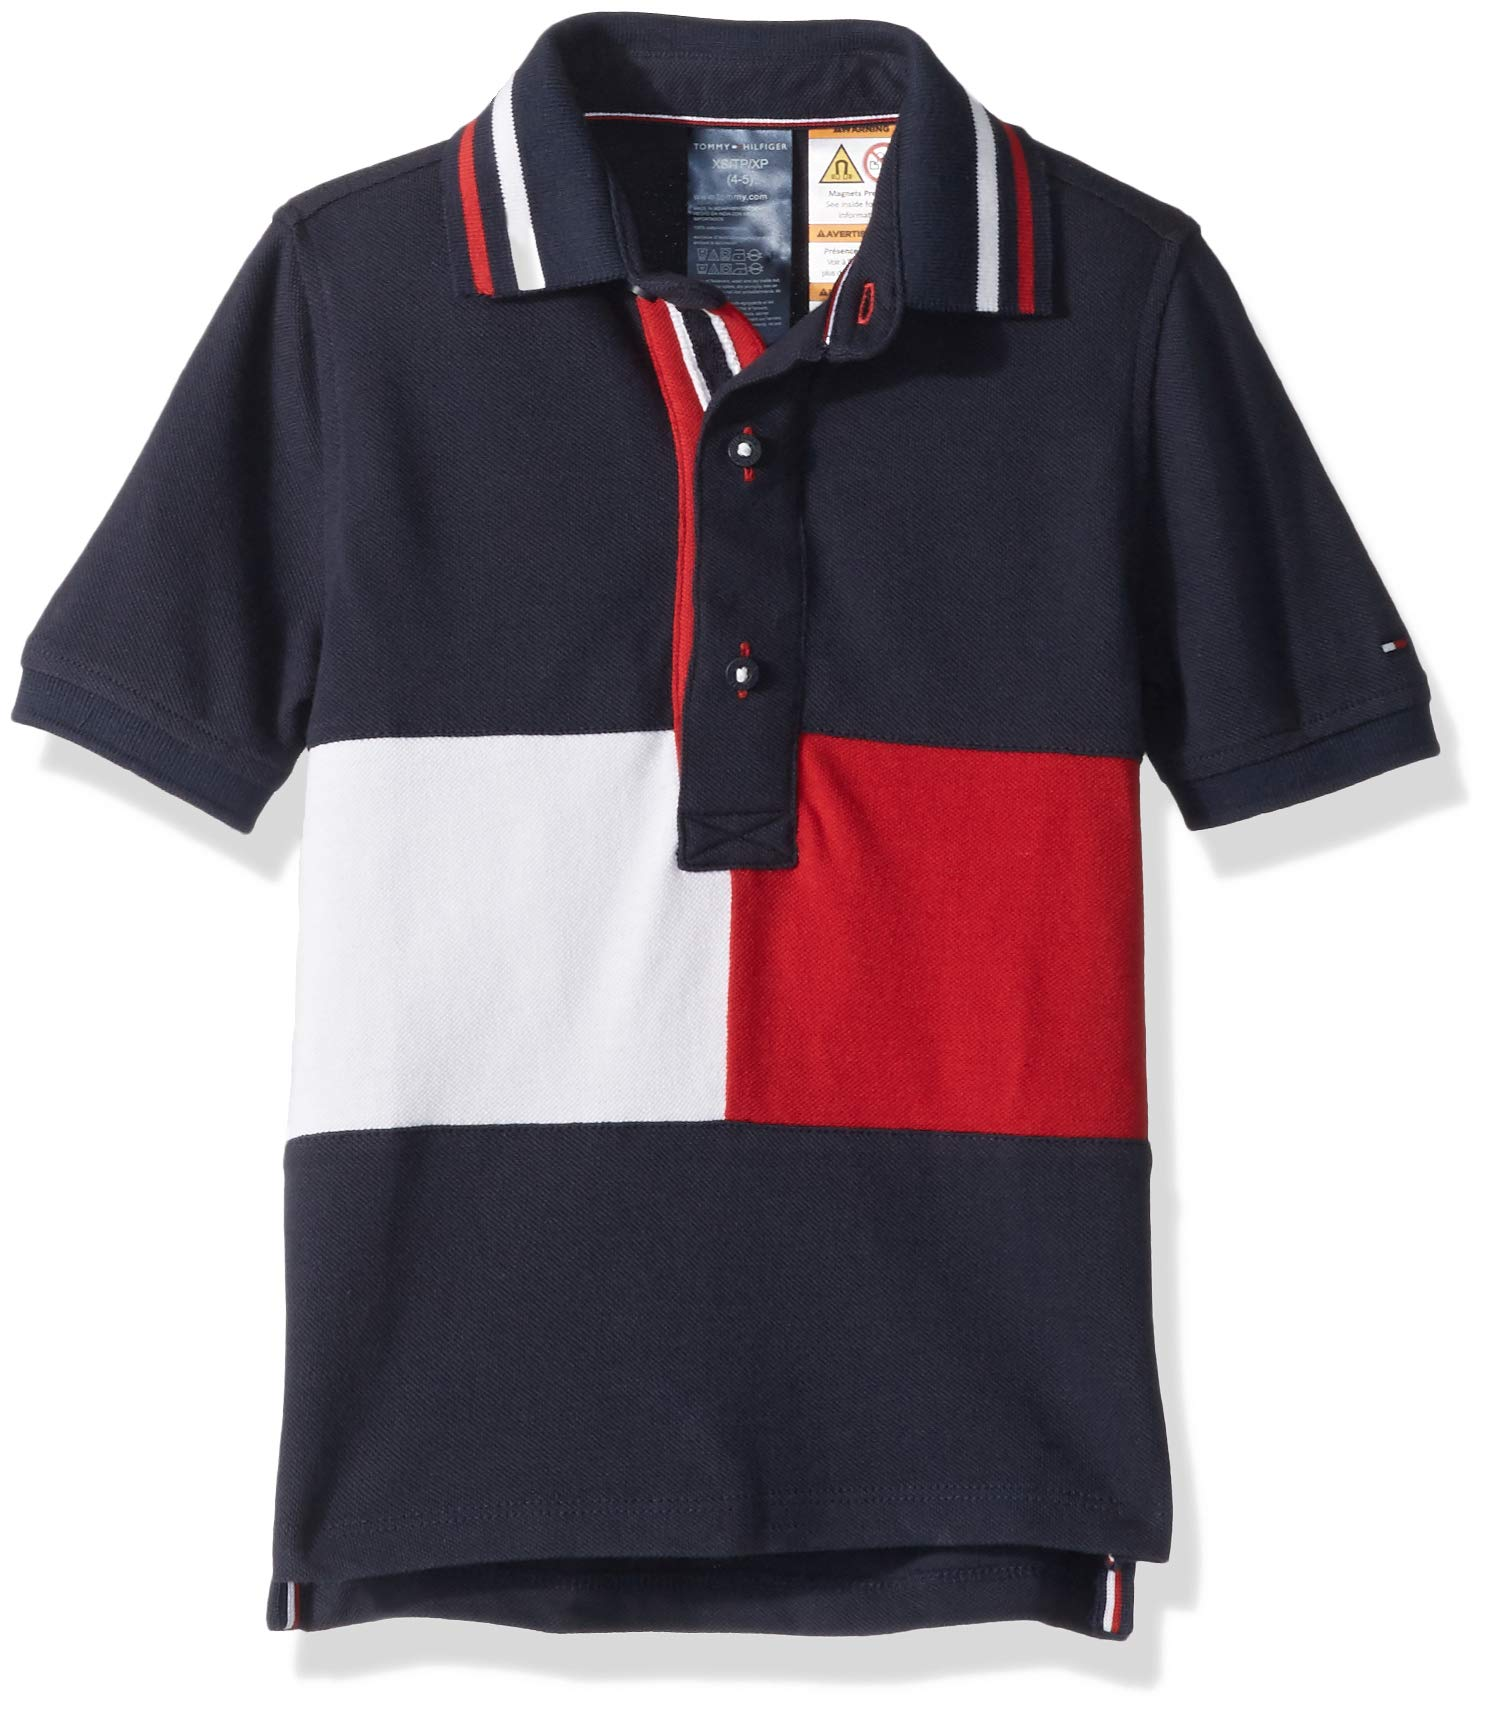 Tommy Hilfiger Boys' Adaptive Polo Shirt with Magnetic Buttons, Navy blazer LG